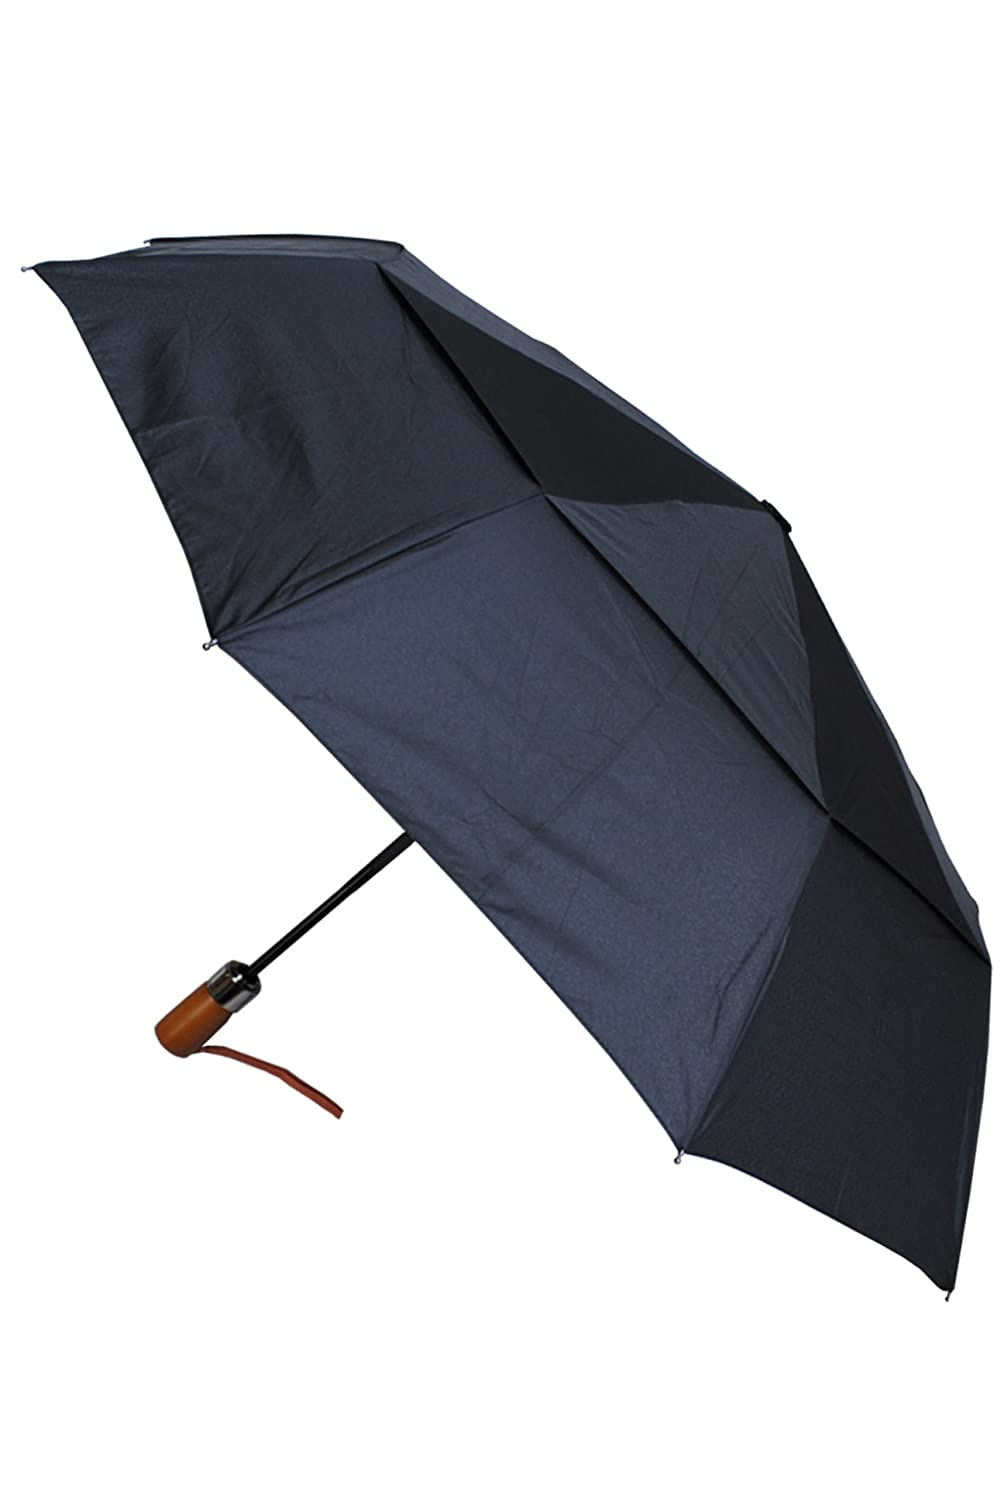 Collar and Cuffs London - 80KPH Strong 9 Rib Reinforced Frame with Fiberglass - Windproof Umbrella - Vented Double Layer Canopy - Wooden Hook Handle - Solid Wood - Compact - Auto Open & Close - Black CCLSTORMPUMB10263